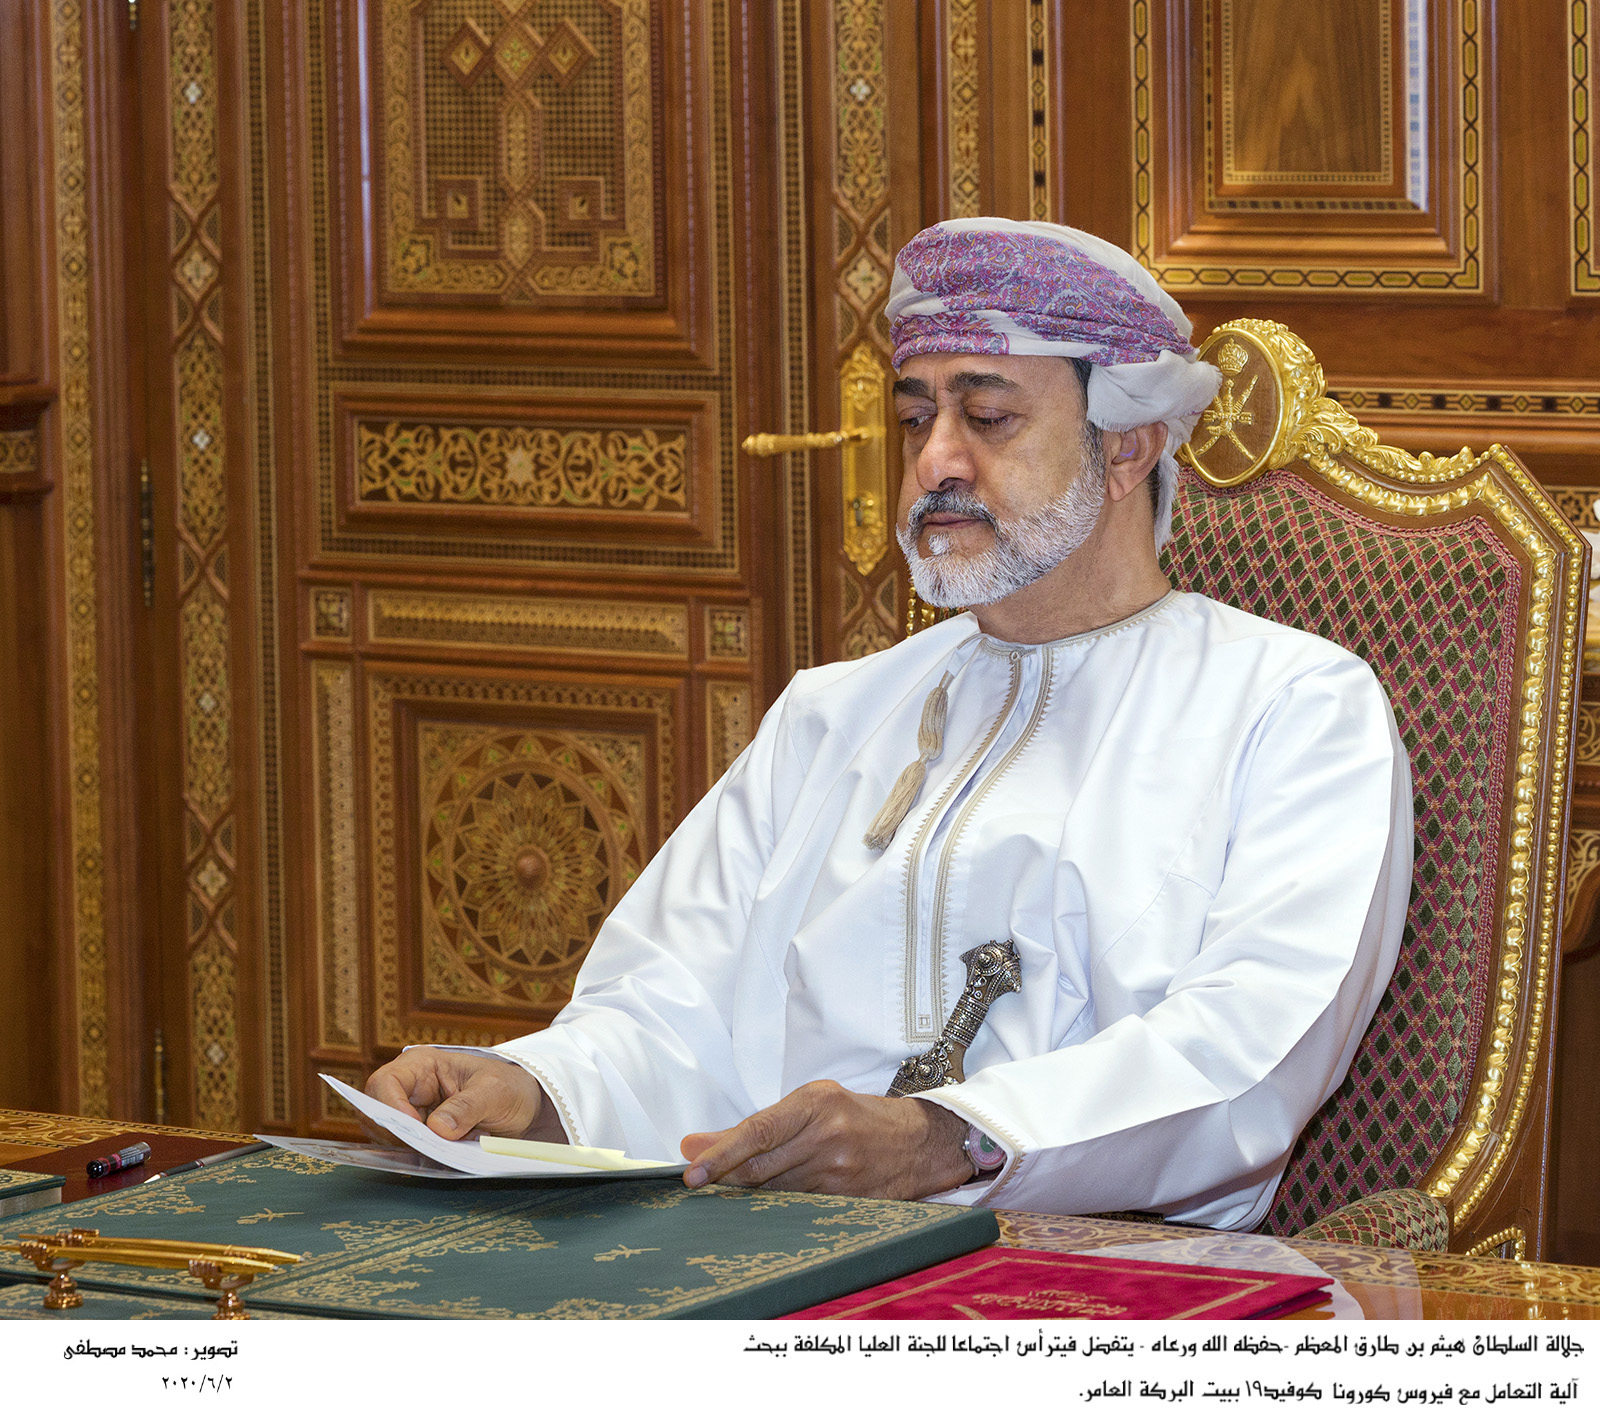 In pictures: His Majesty praises efforts to contain COVID-19